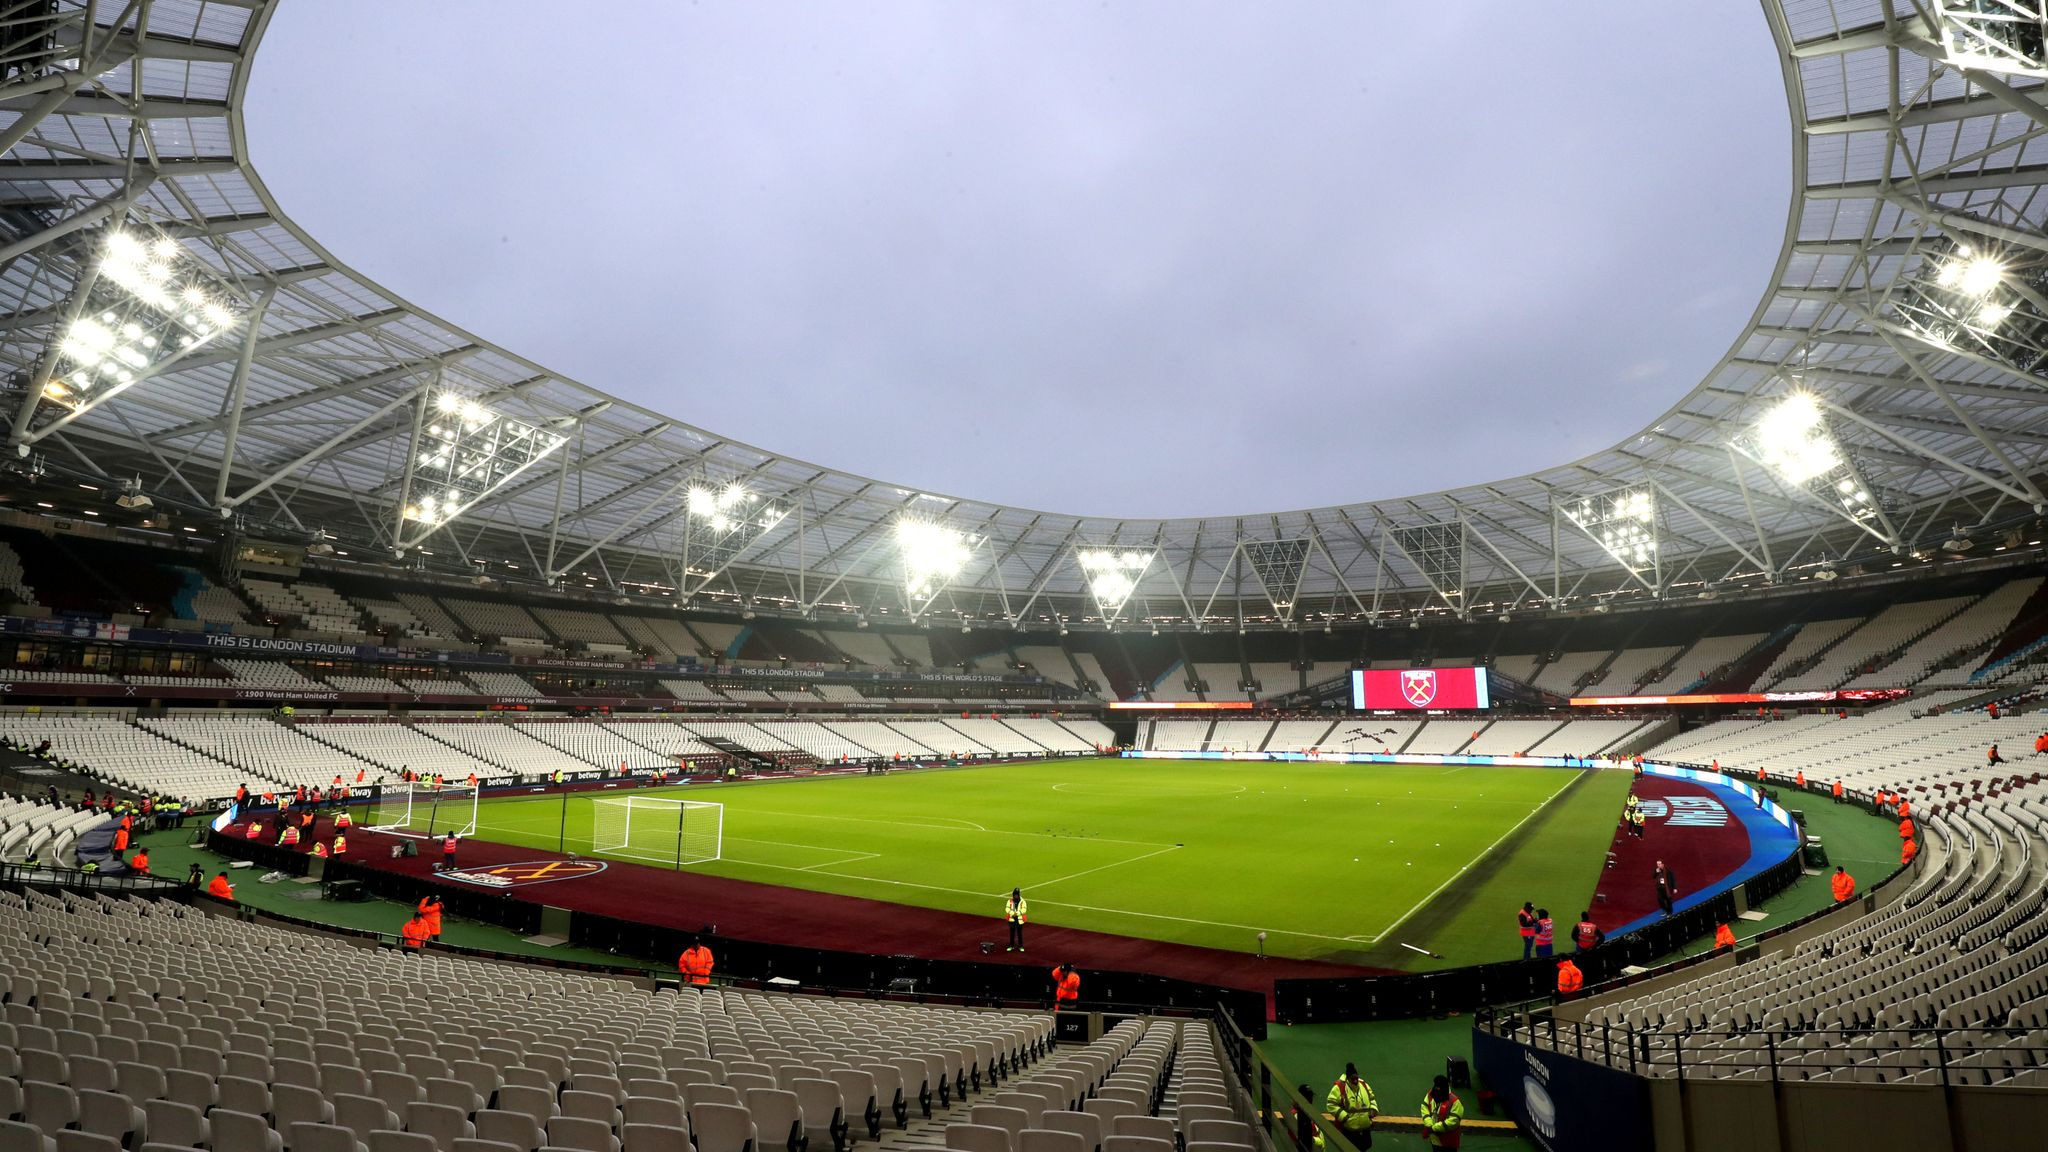 West Ham S London Stadium To Receive Two New Tiers Of Seating Football News Sky Sports